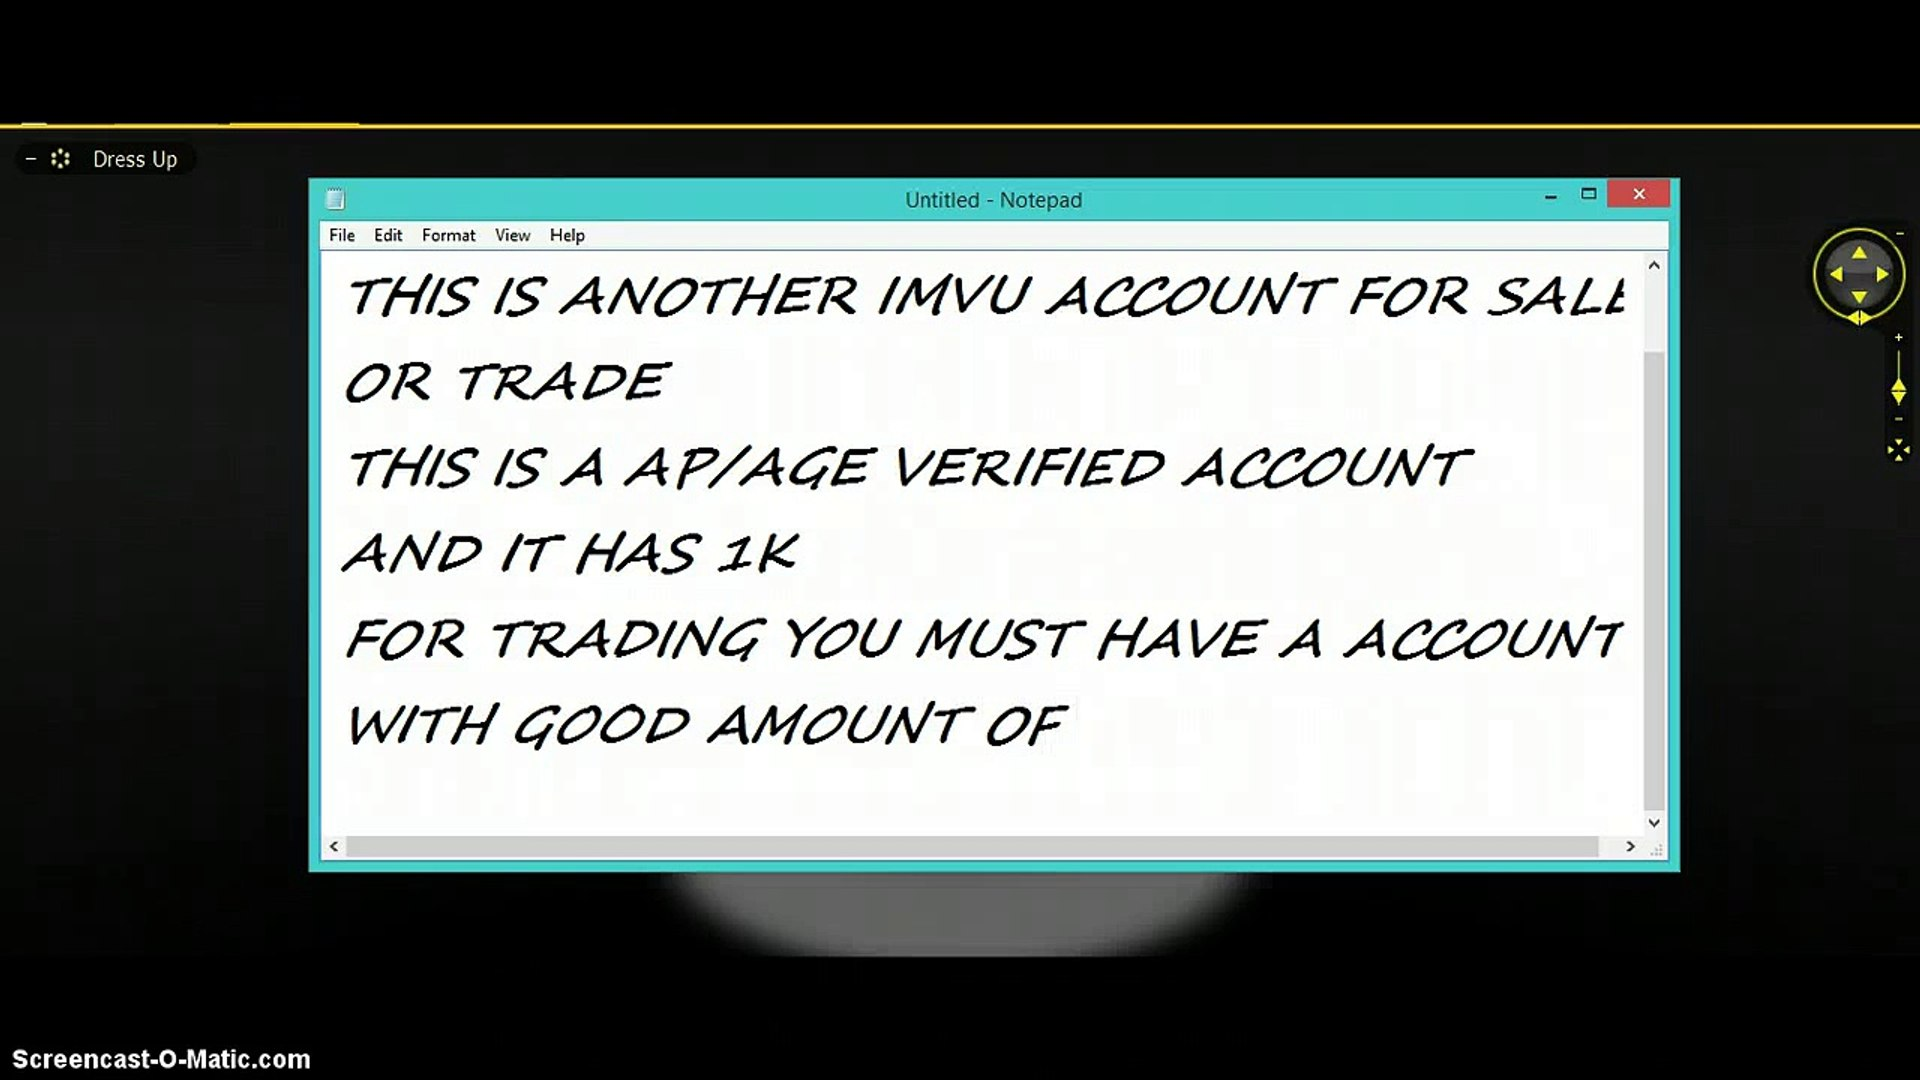 AP imvu account for sale